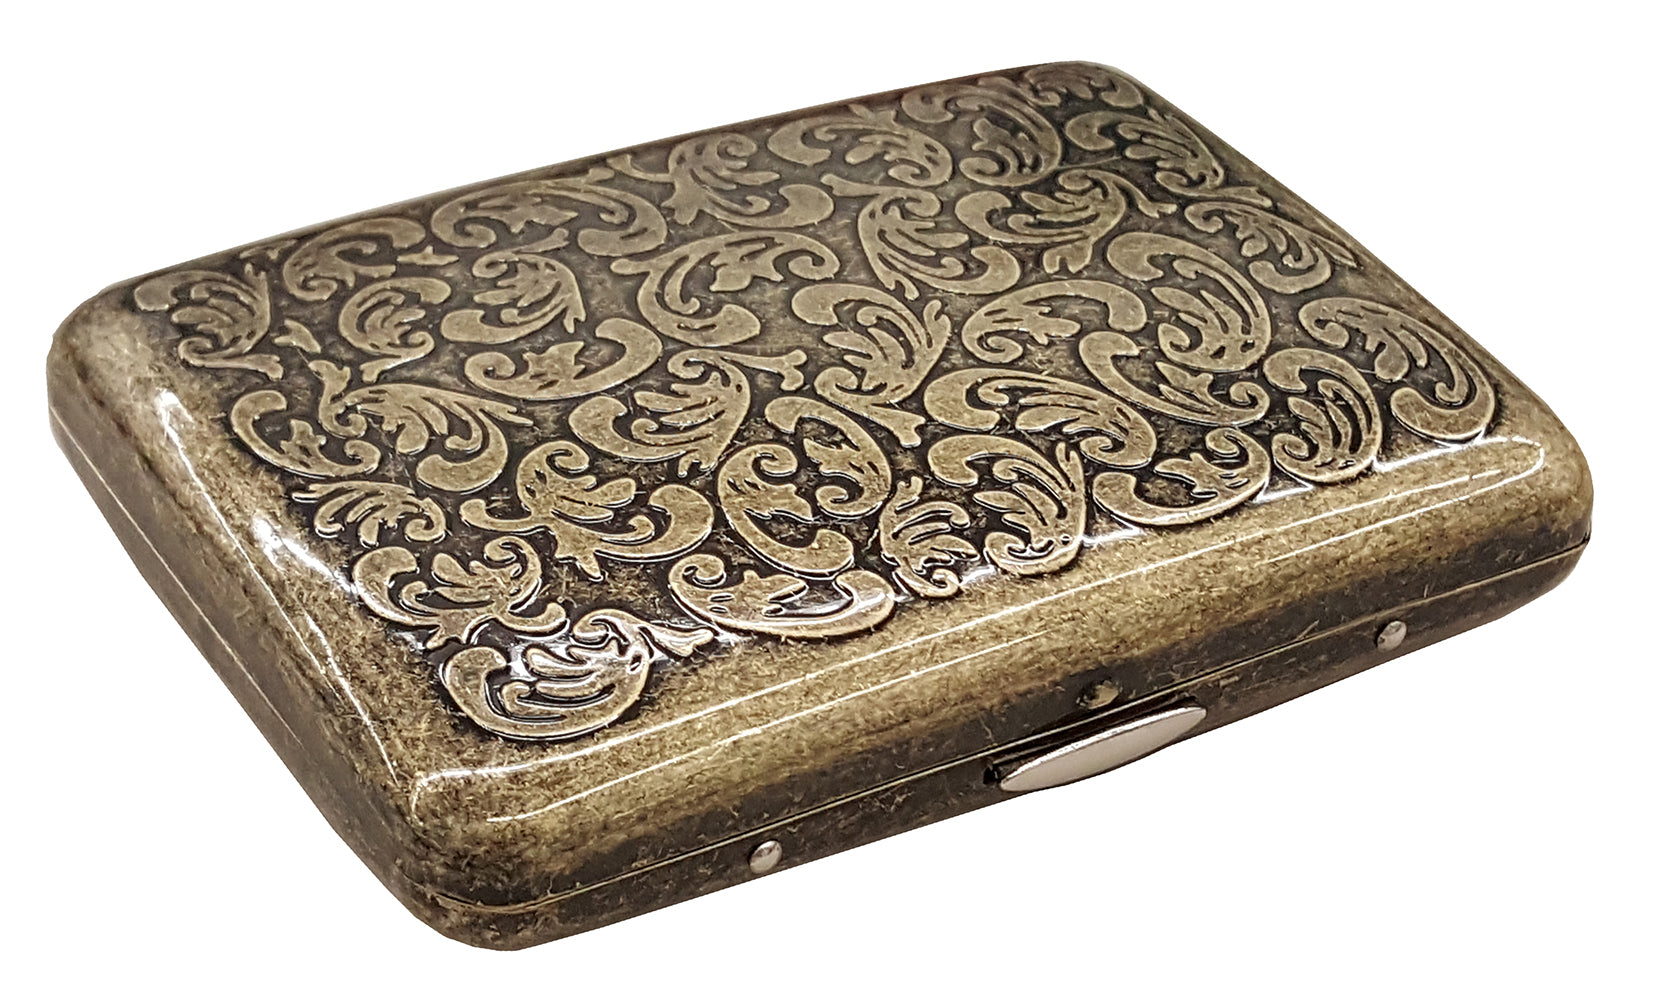 Antique Brass Paisley Cigarette Case (Regular Size Cigarettes)